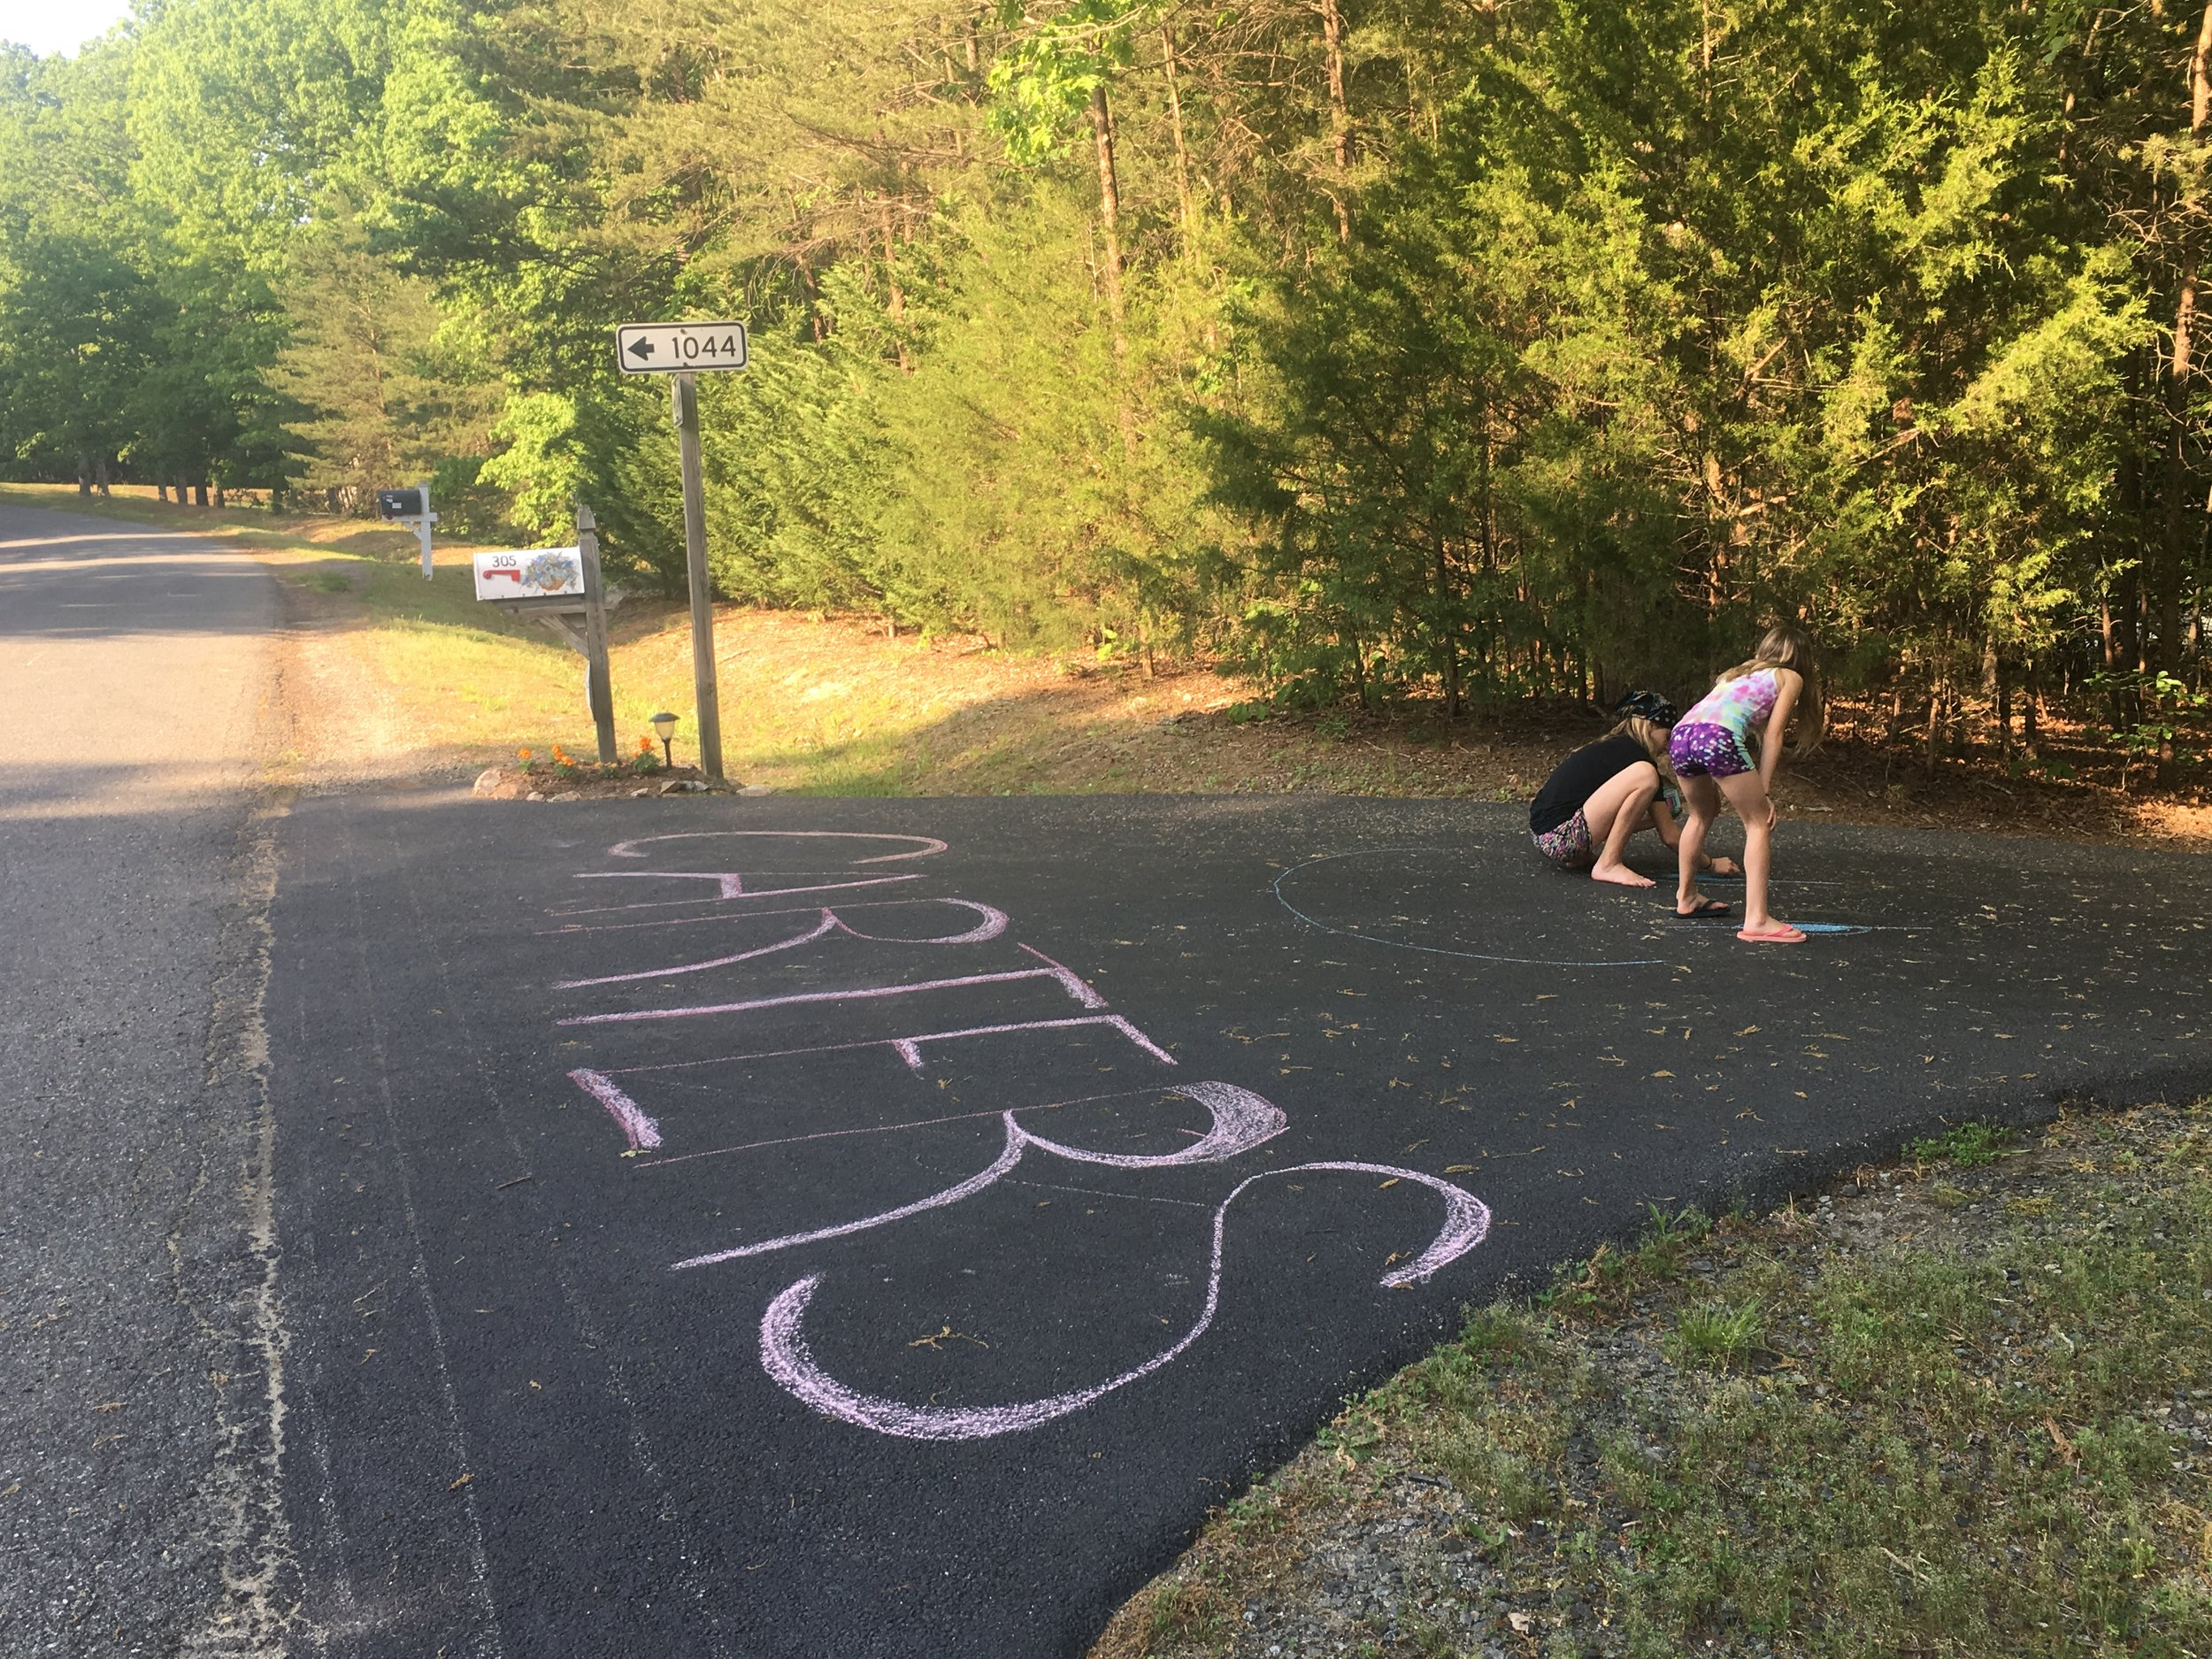 We felt so loved, and this was only part of it. The Edwards kids even had a finish line and drew some really great biking art work!